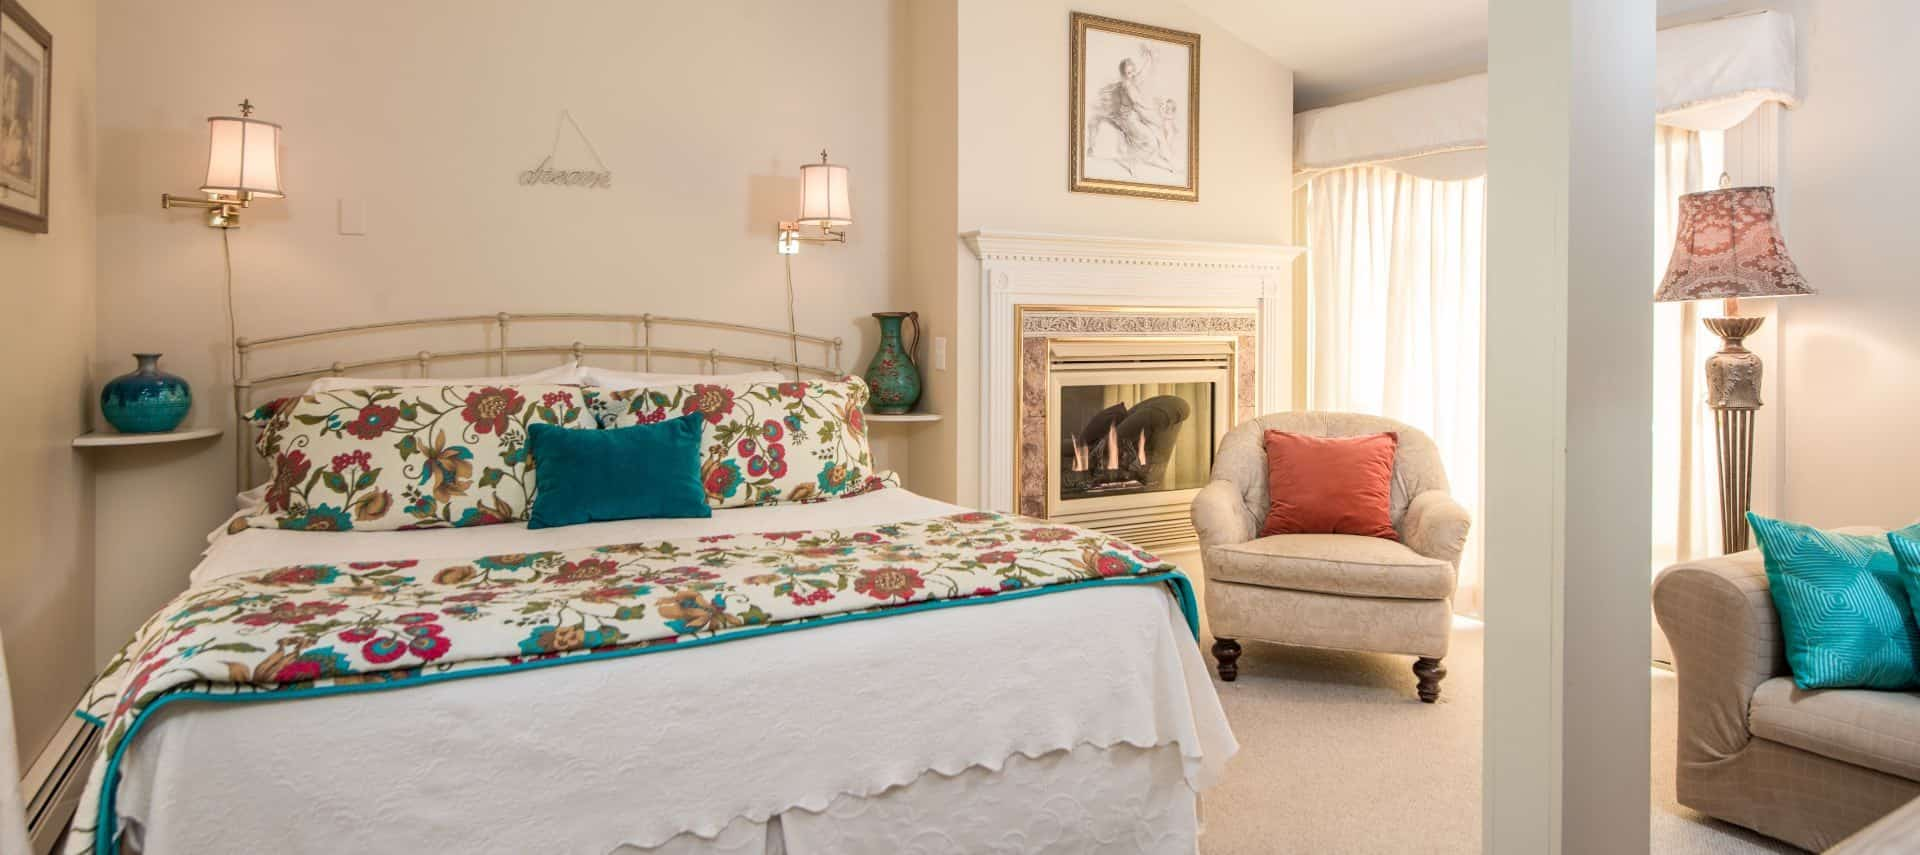 Bedroom with cream painted rod iron bed with floral and white bedding, sconce lamps attached to wall, burning fireplace with wooden mantel painted white, and upholstered chair and loveseat